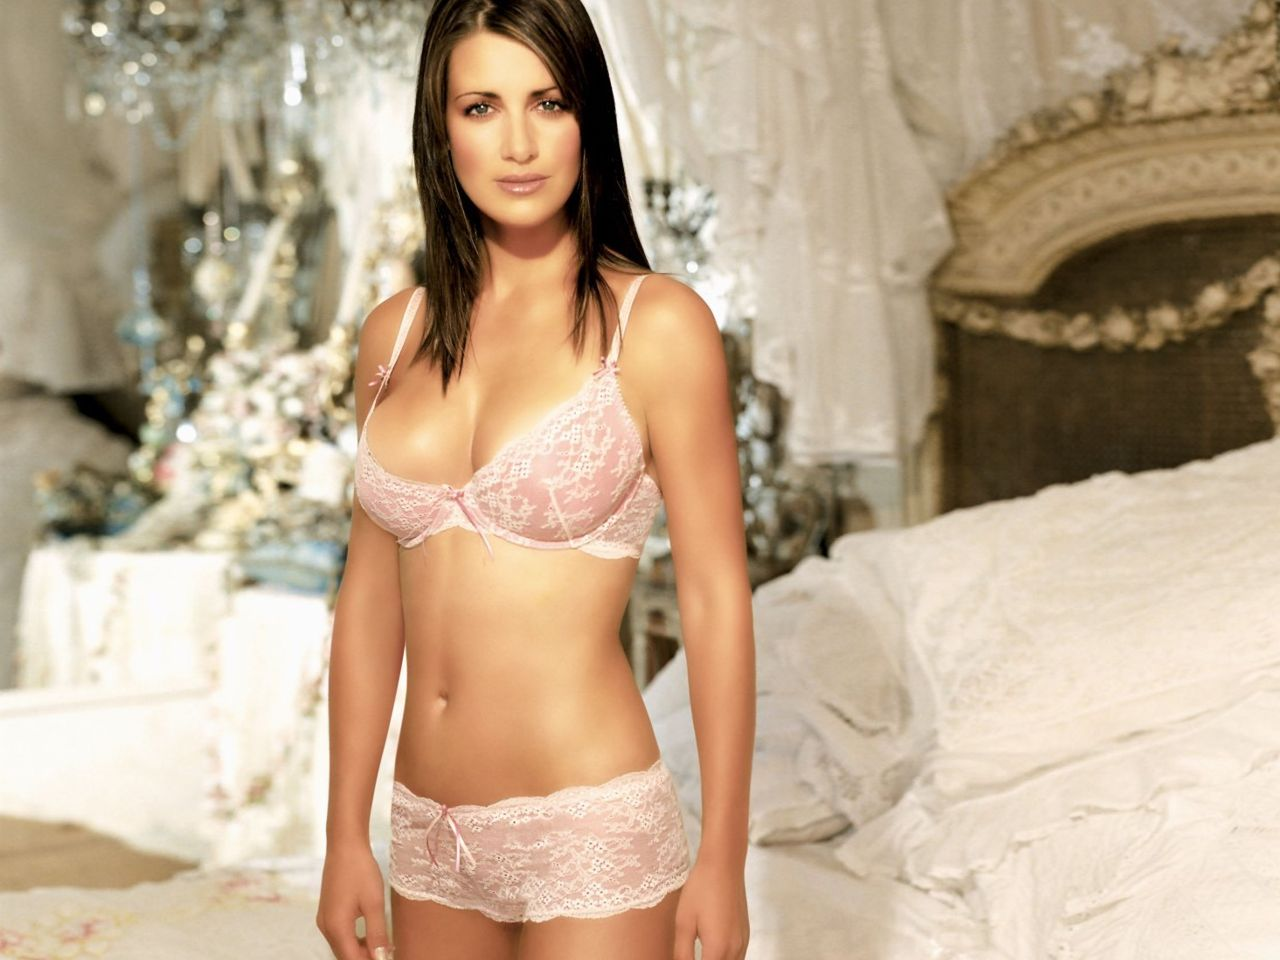 kirsty gallacher desktop backgrounds desktop background wallpapers